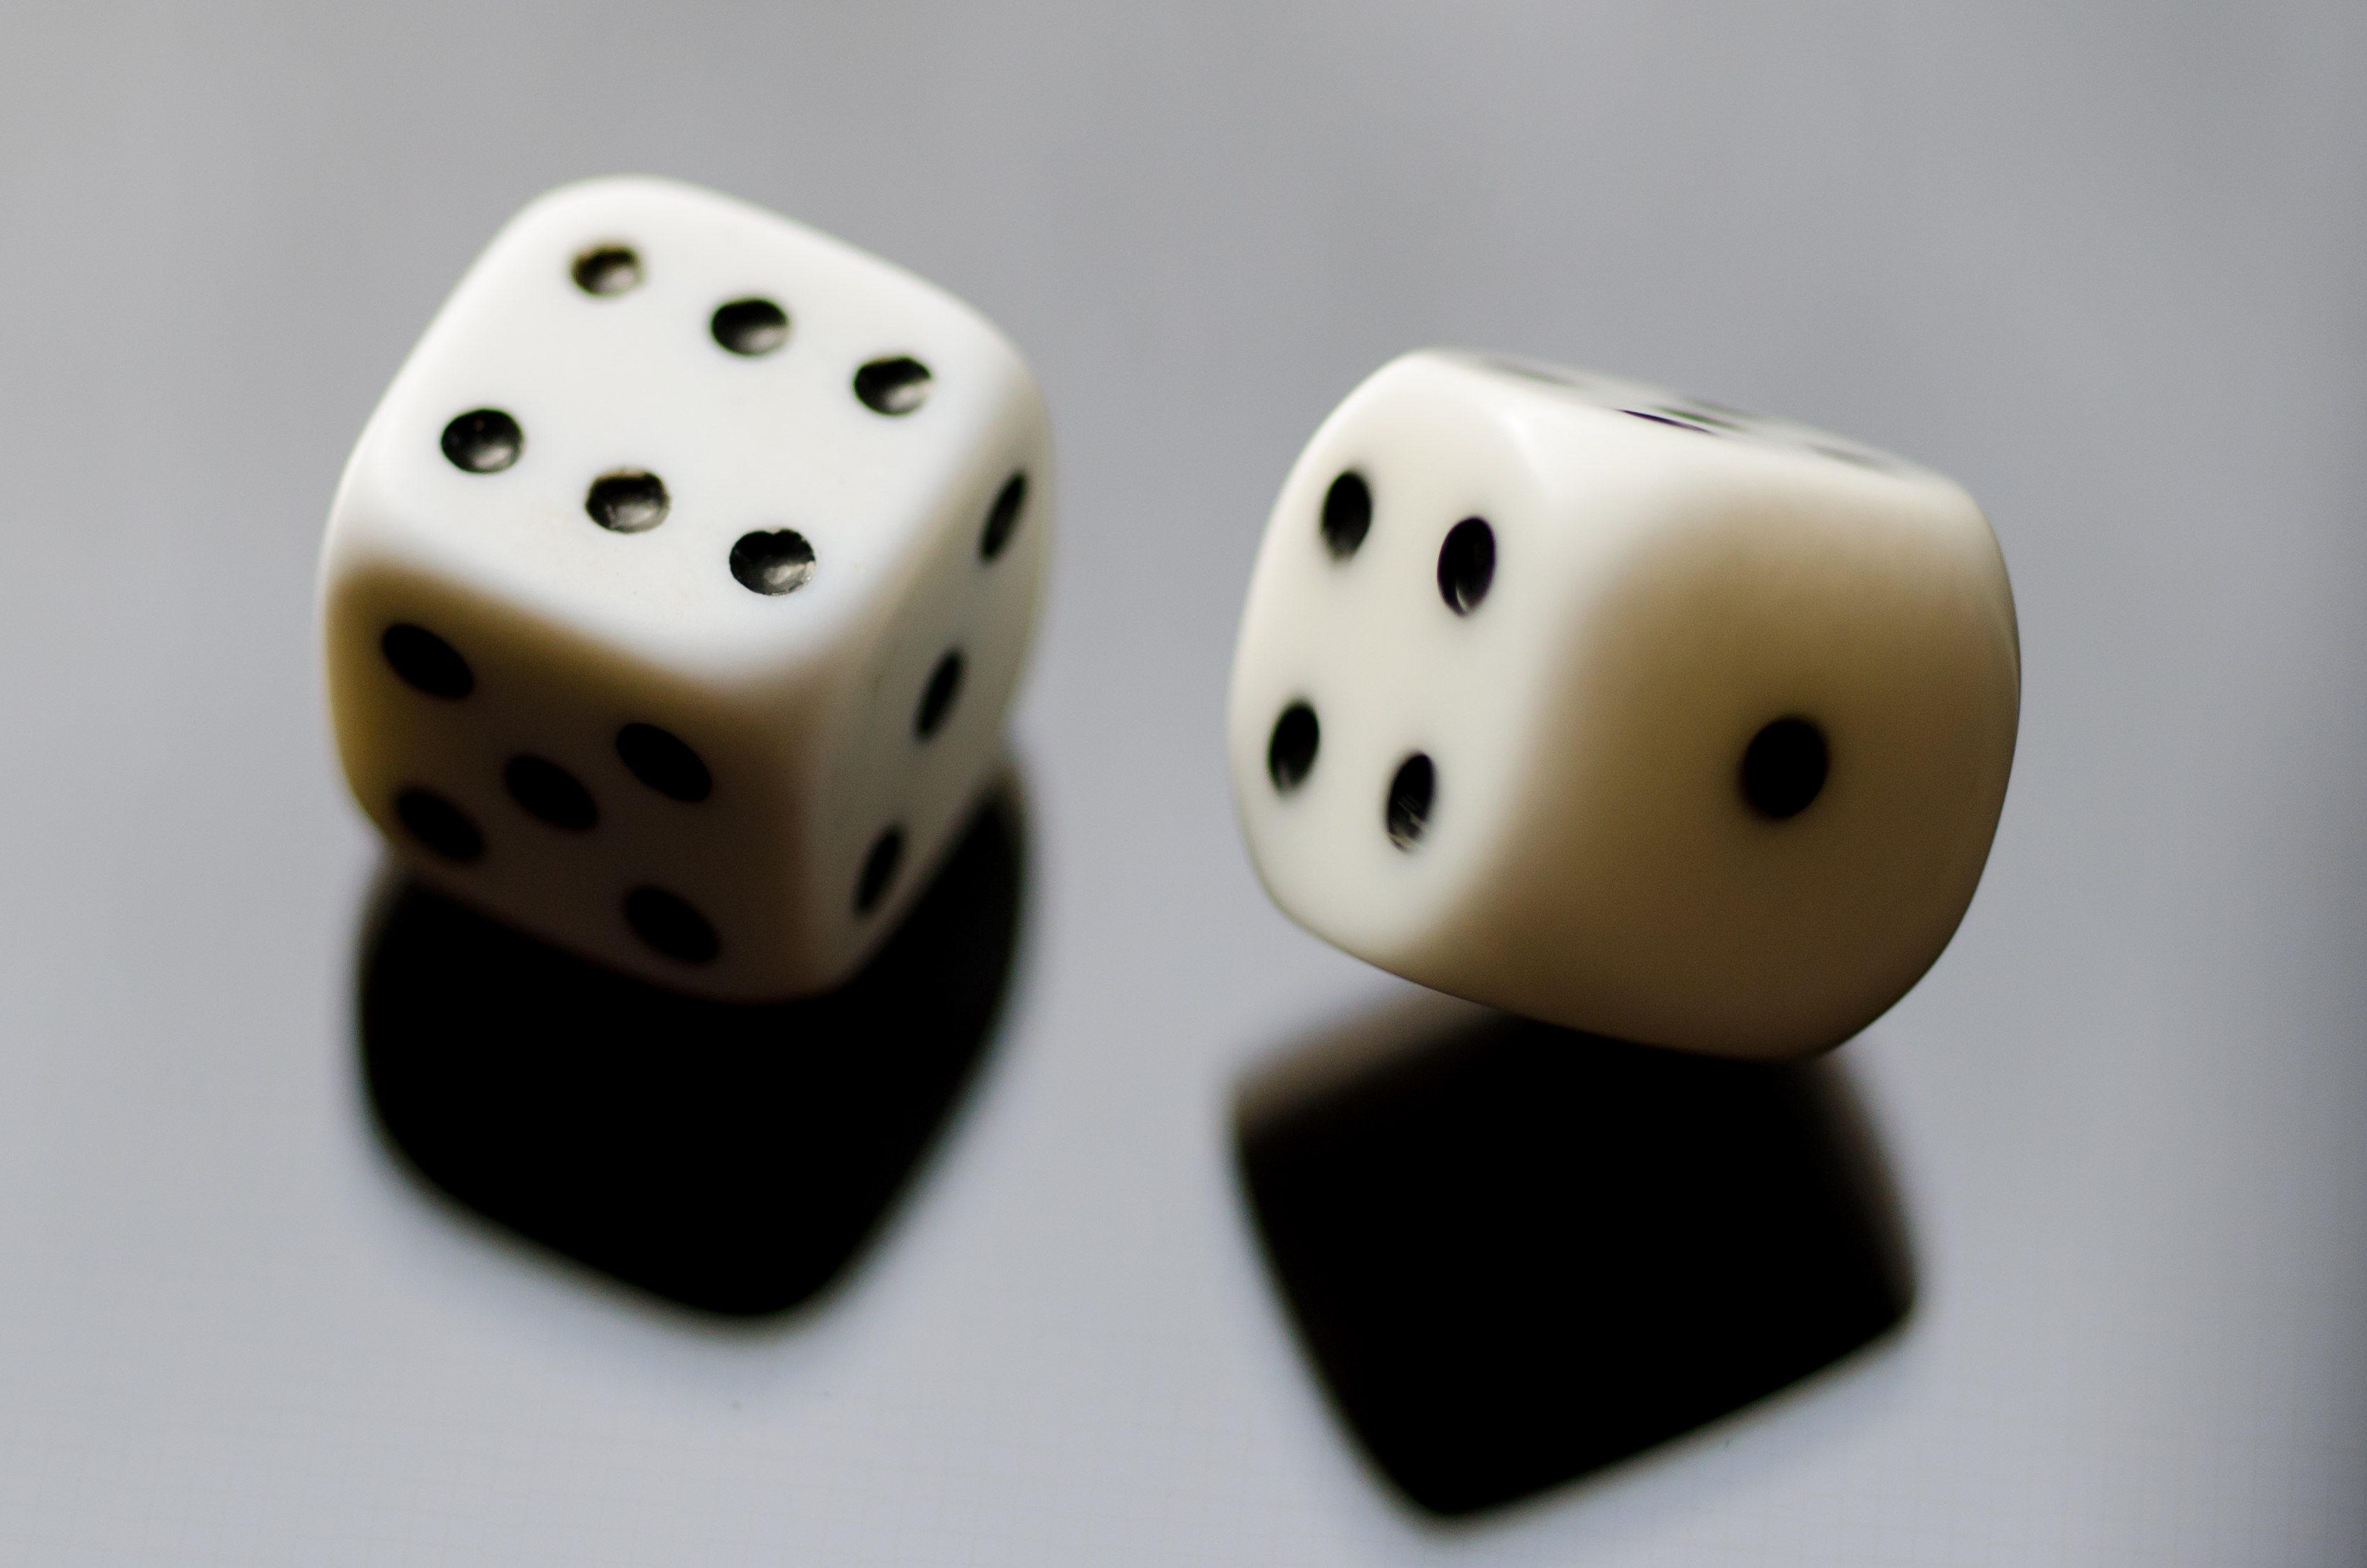 dice-free-license-cc0.jpg